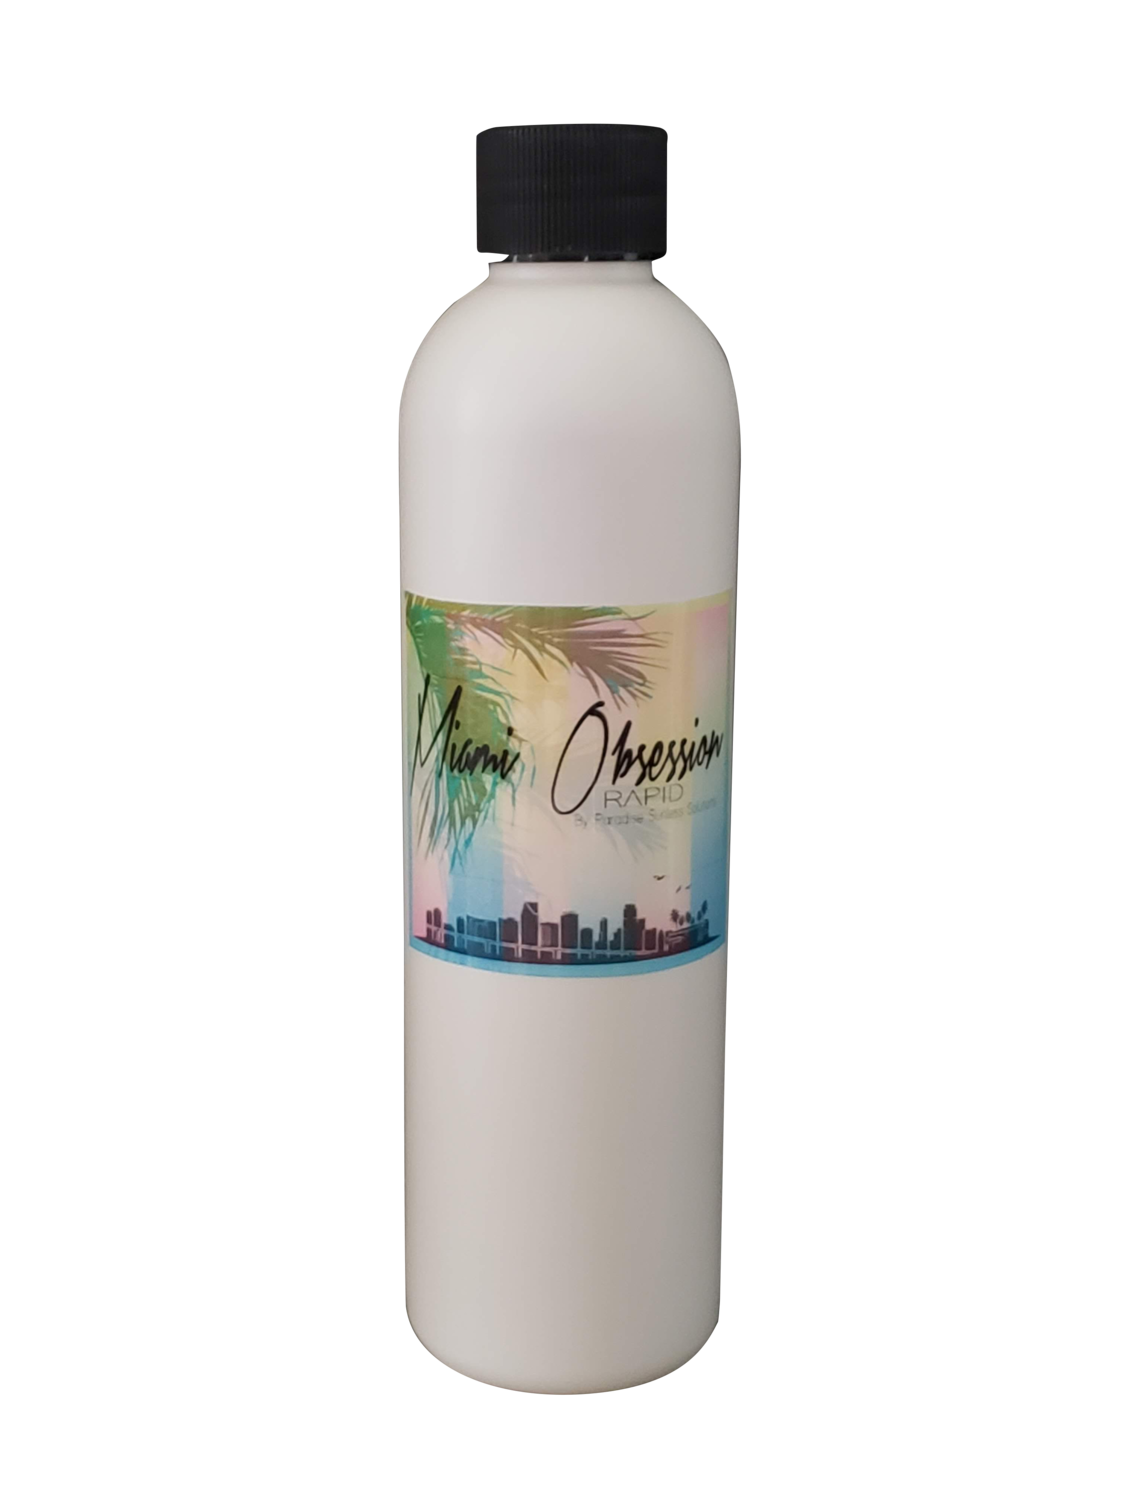 Miami Obsession Rapid 8 oz sample size